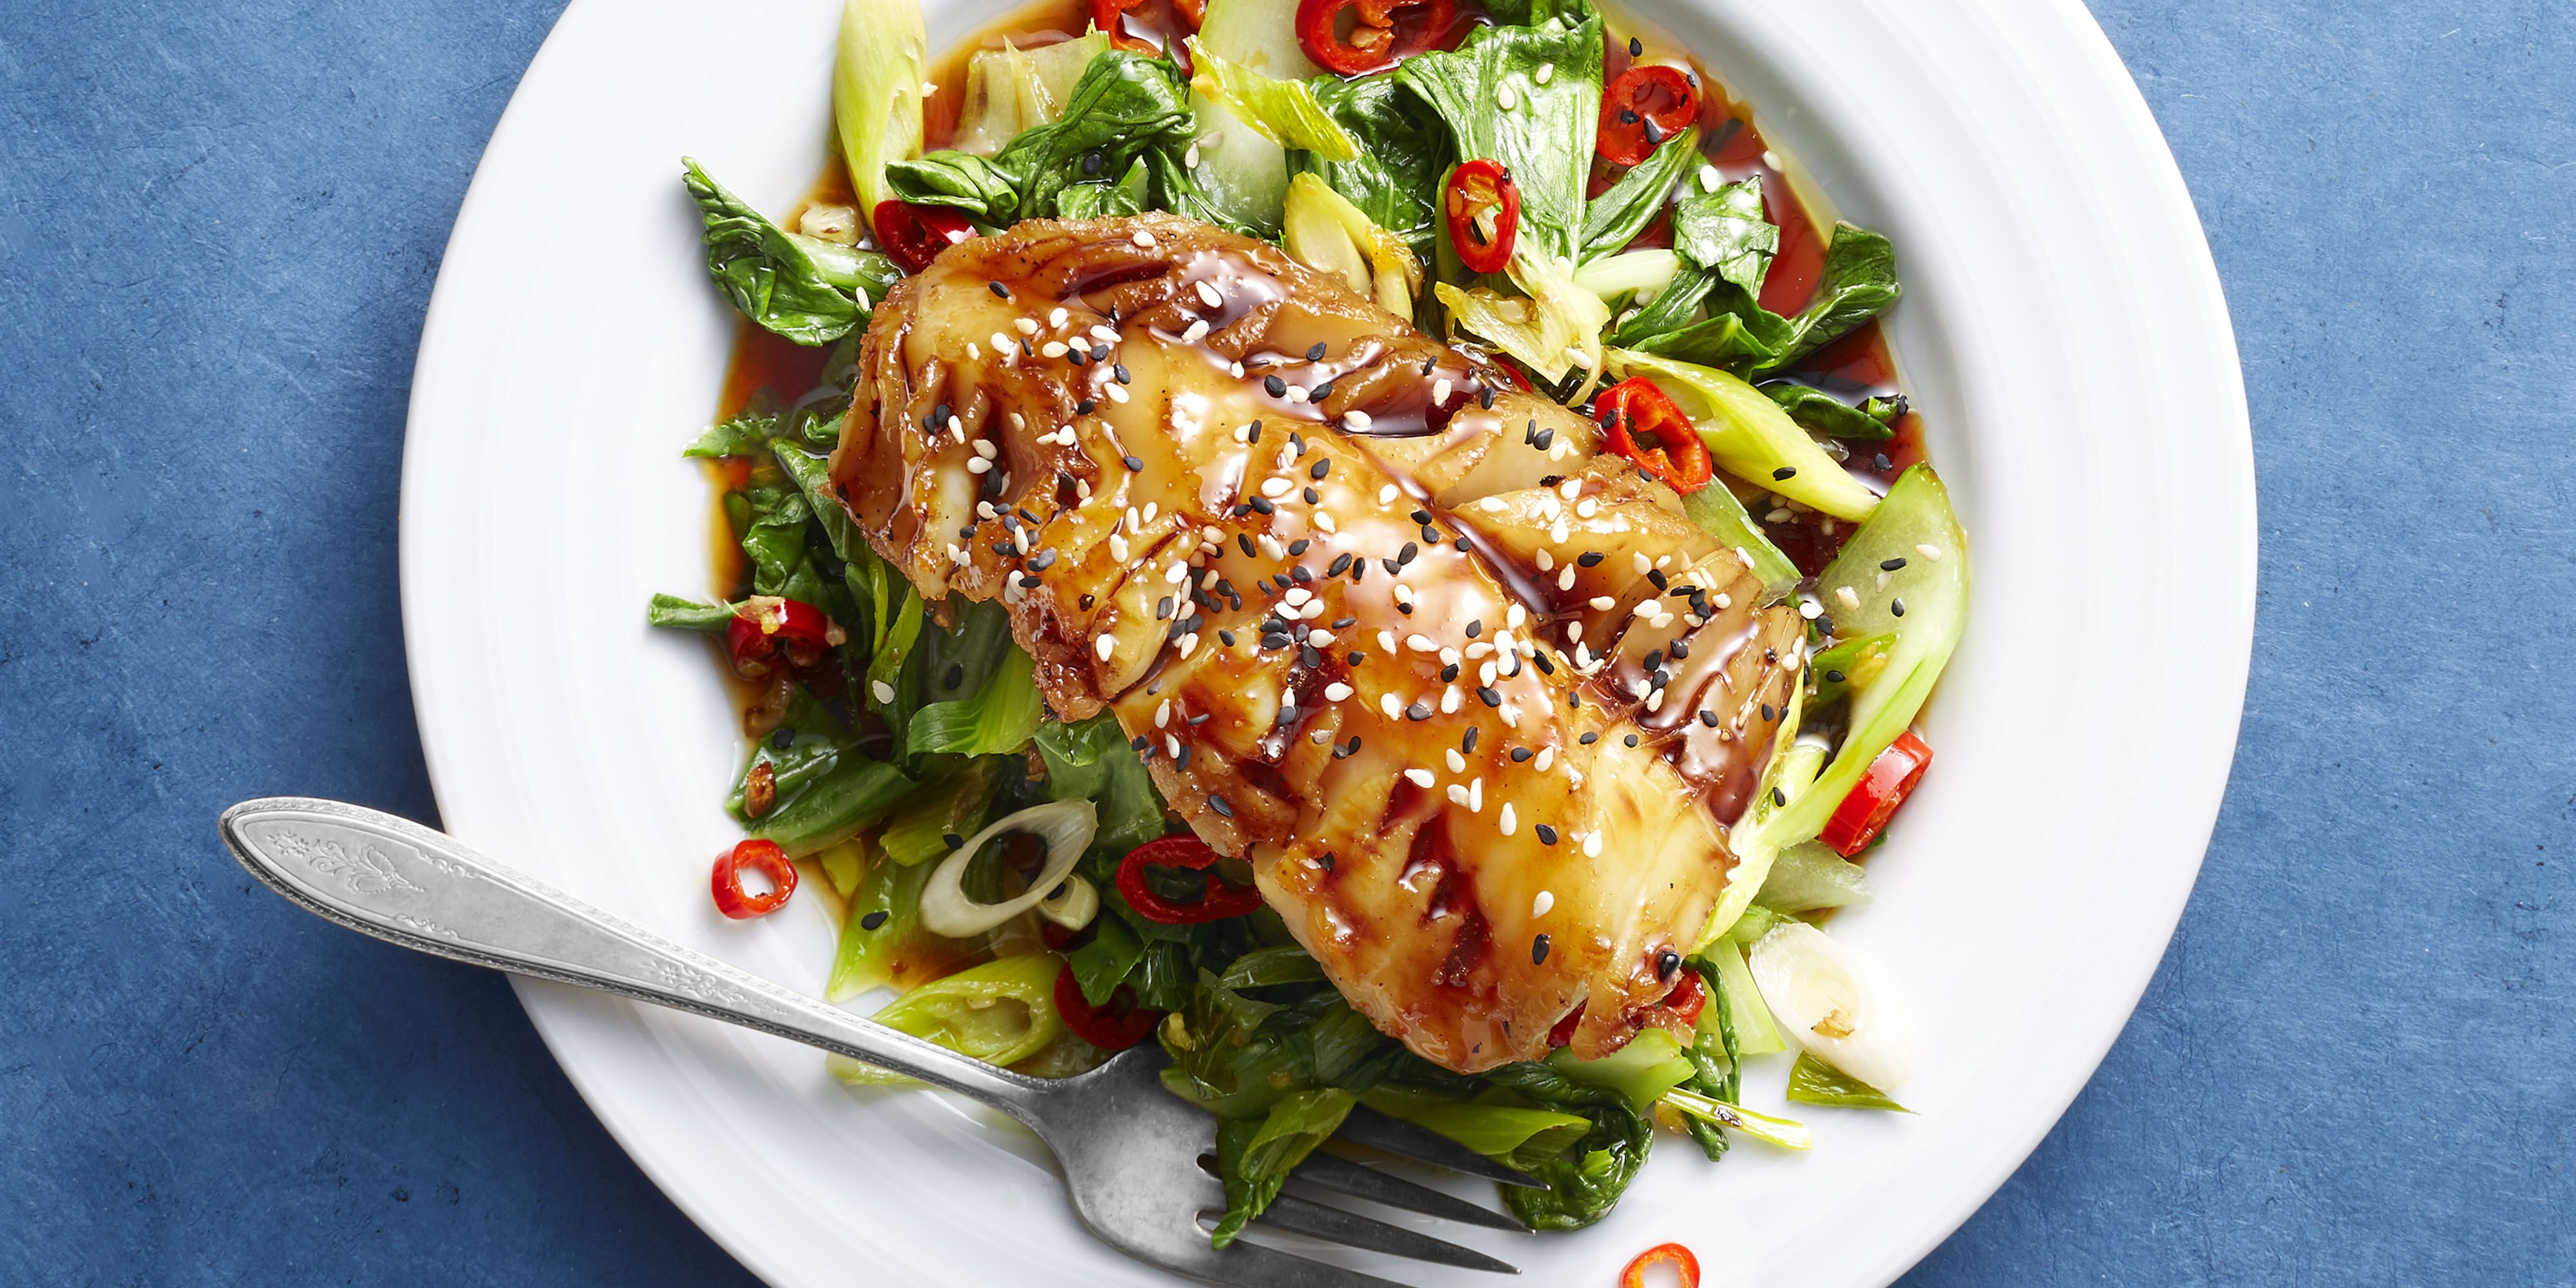 33 Easy Low Calorie Meals Low Cal Recipes That Ll Fill You Up